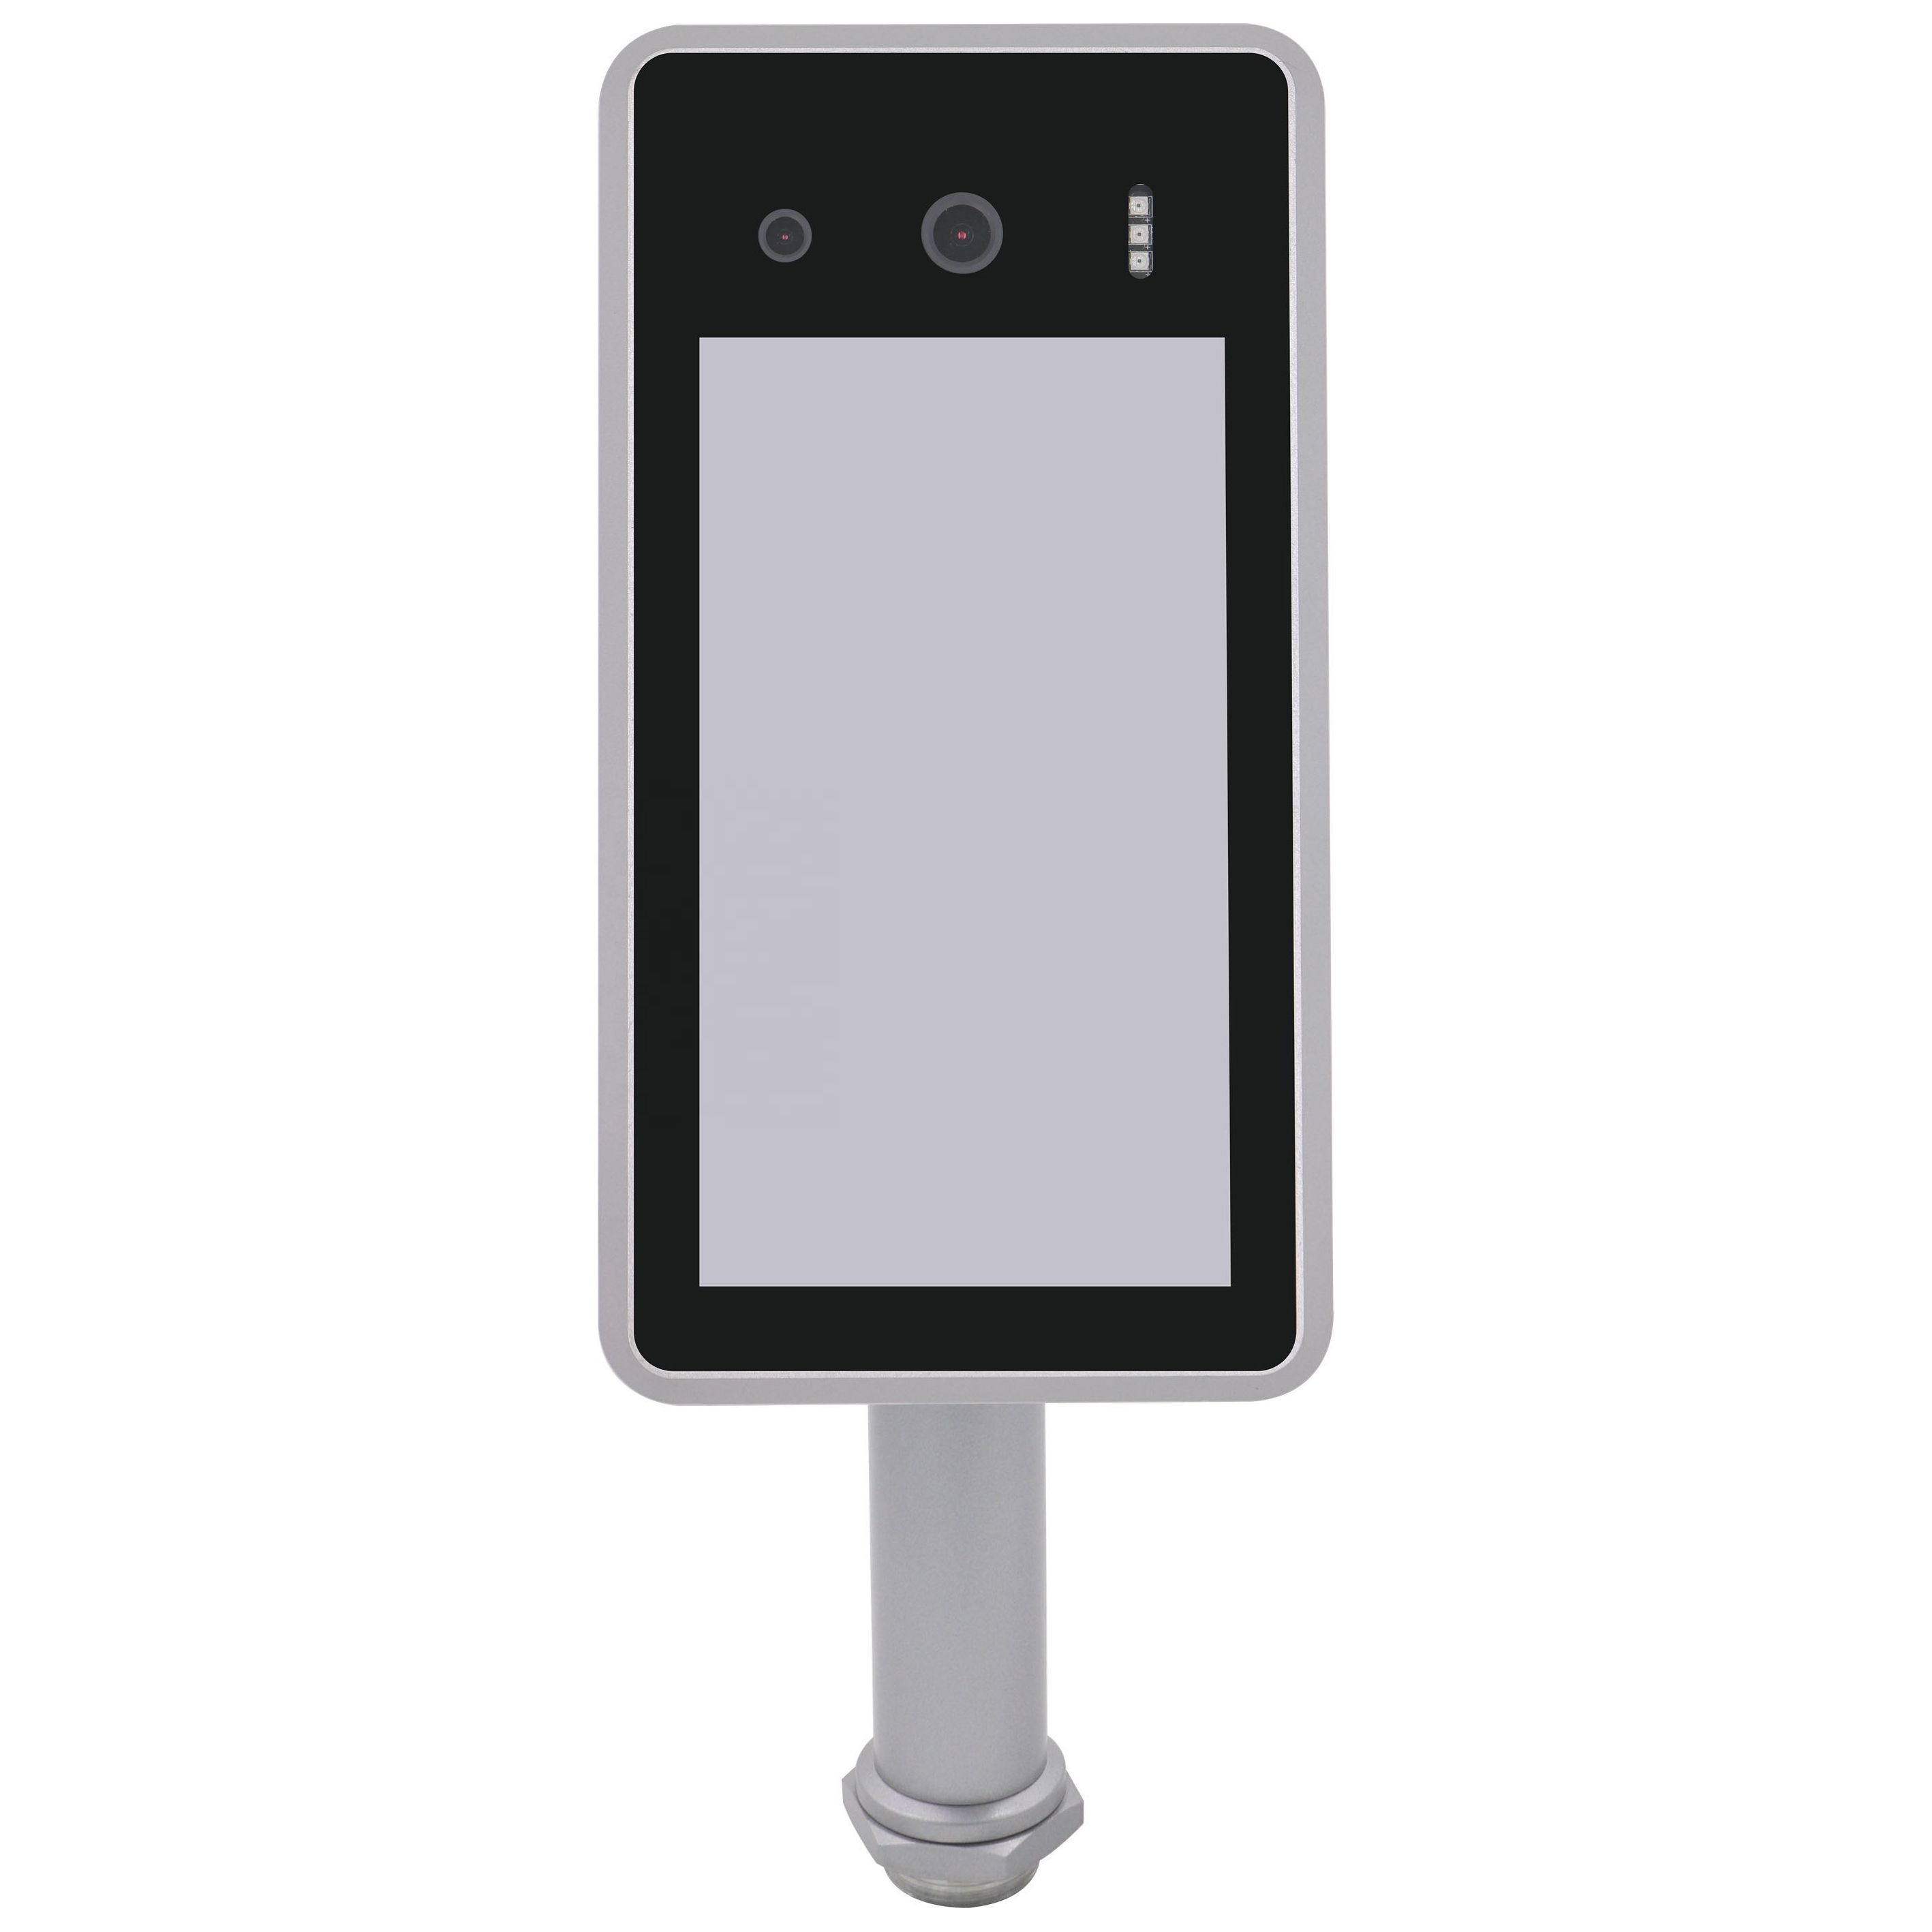 7inch face recognition AI thermometer with access control system